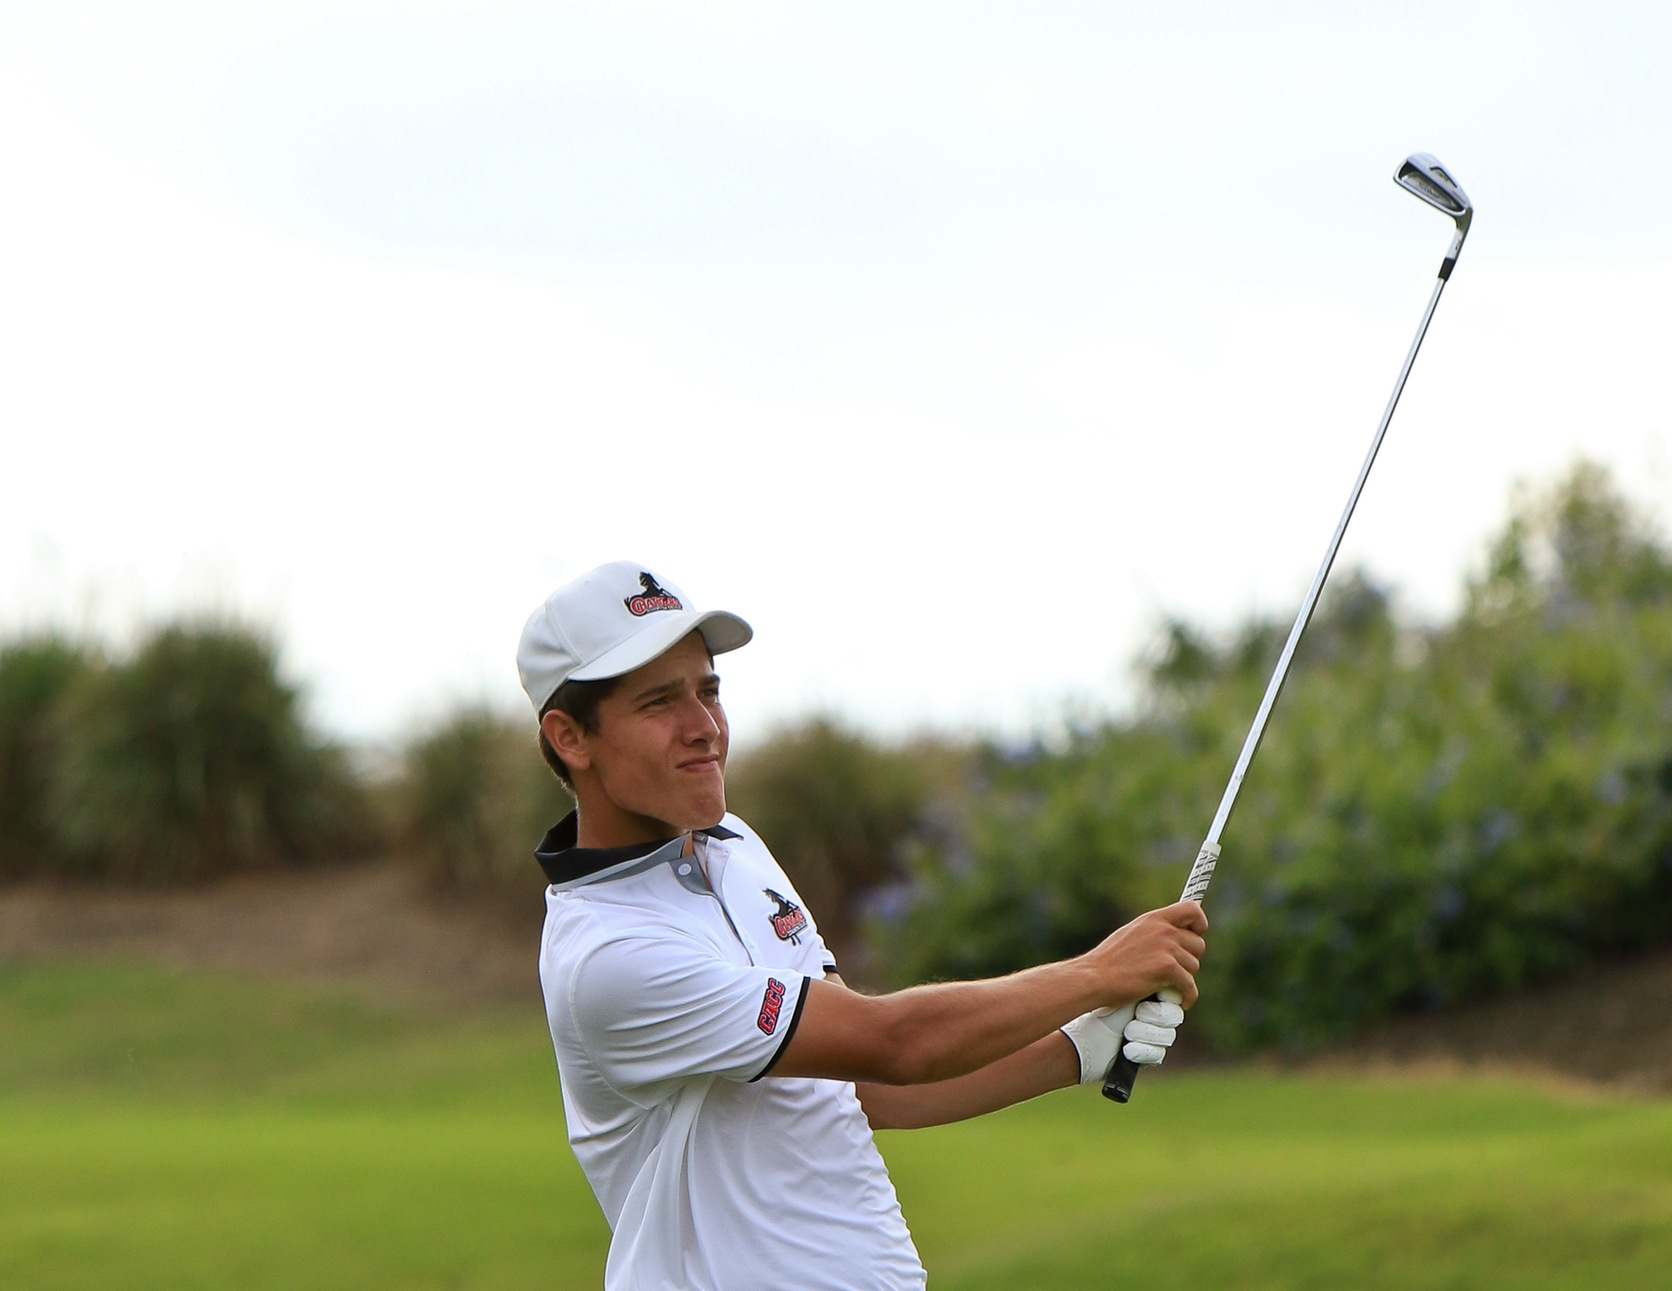 GOLF IN FIFTH PLACE AFTER ROUND ONE OF FPU INVITATIONAL